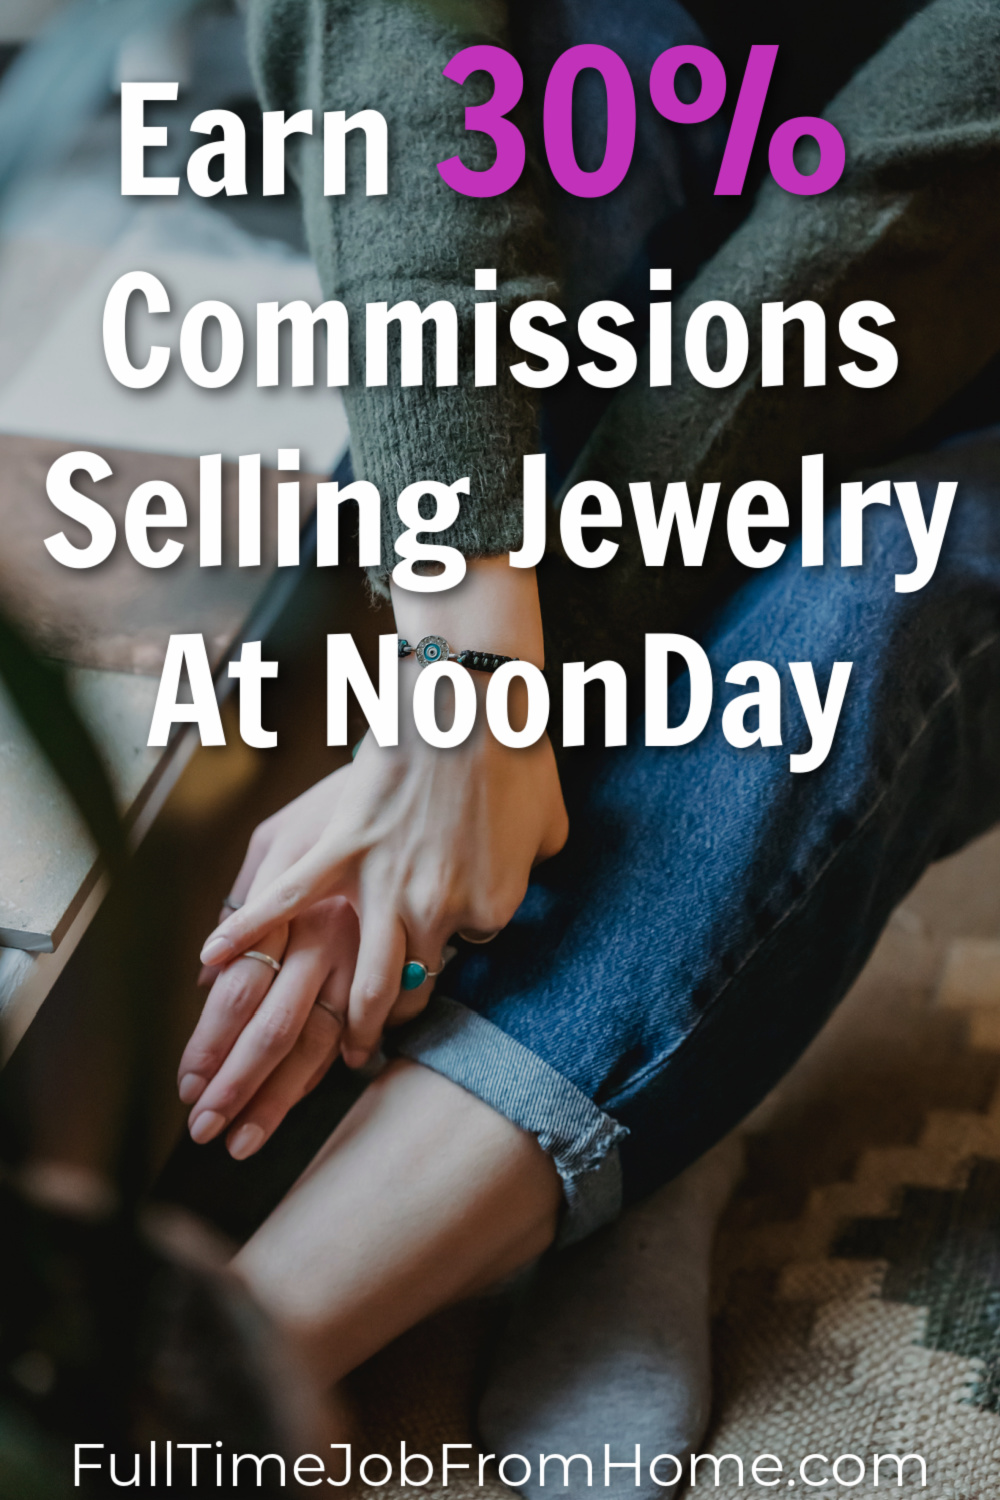 In this Noonday Direct Sales Review, we will see if you can really make money selling jewelry or if noonday is just another direct sales pyramid scheme